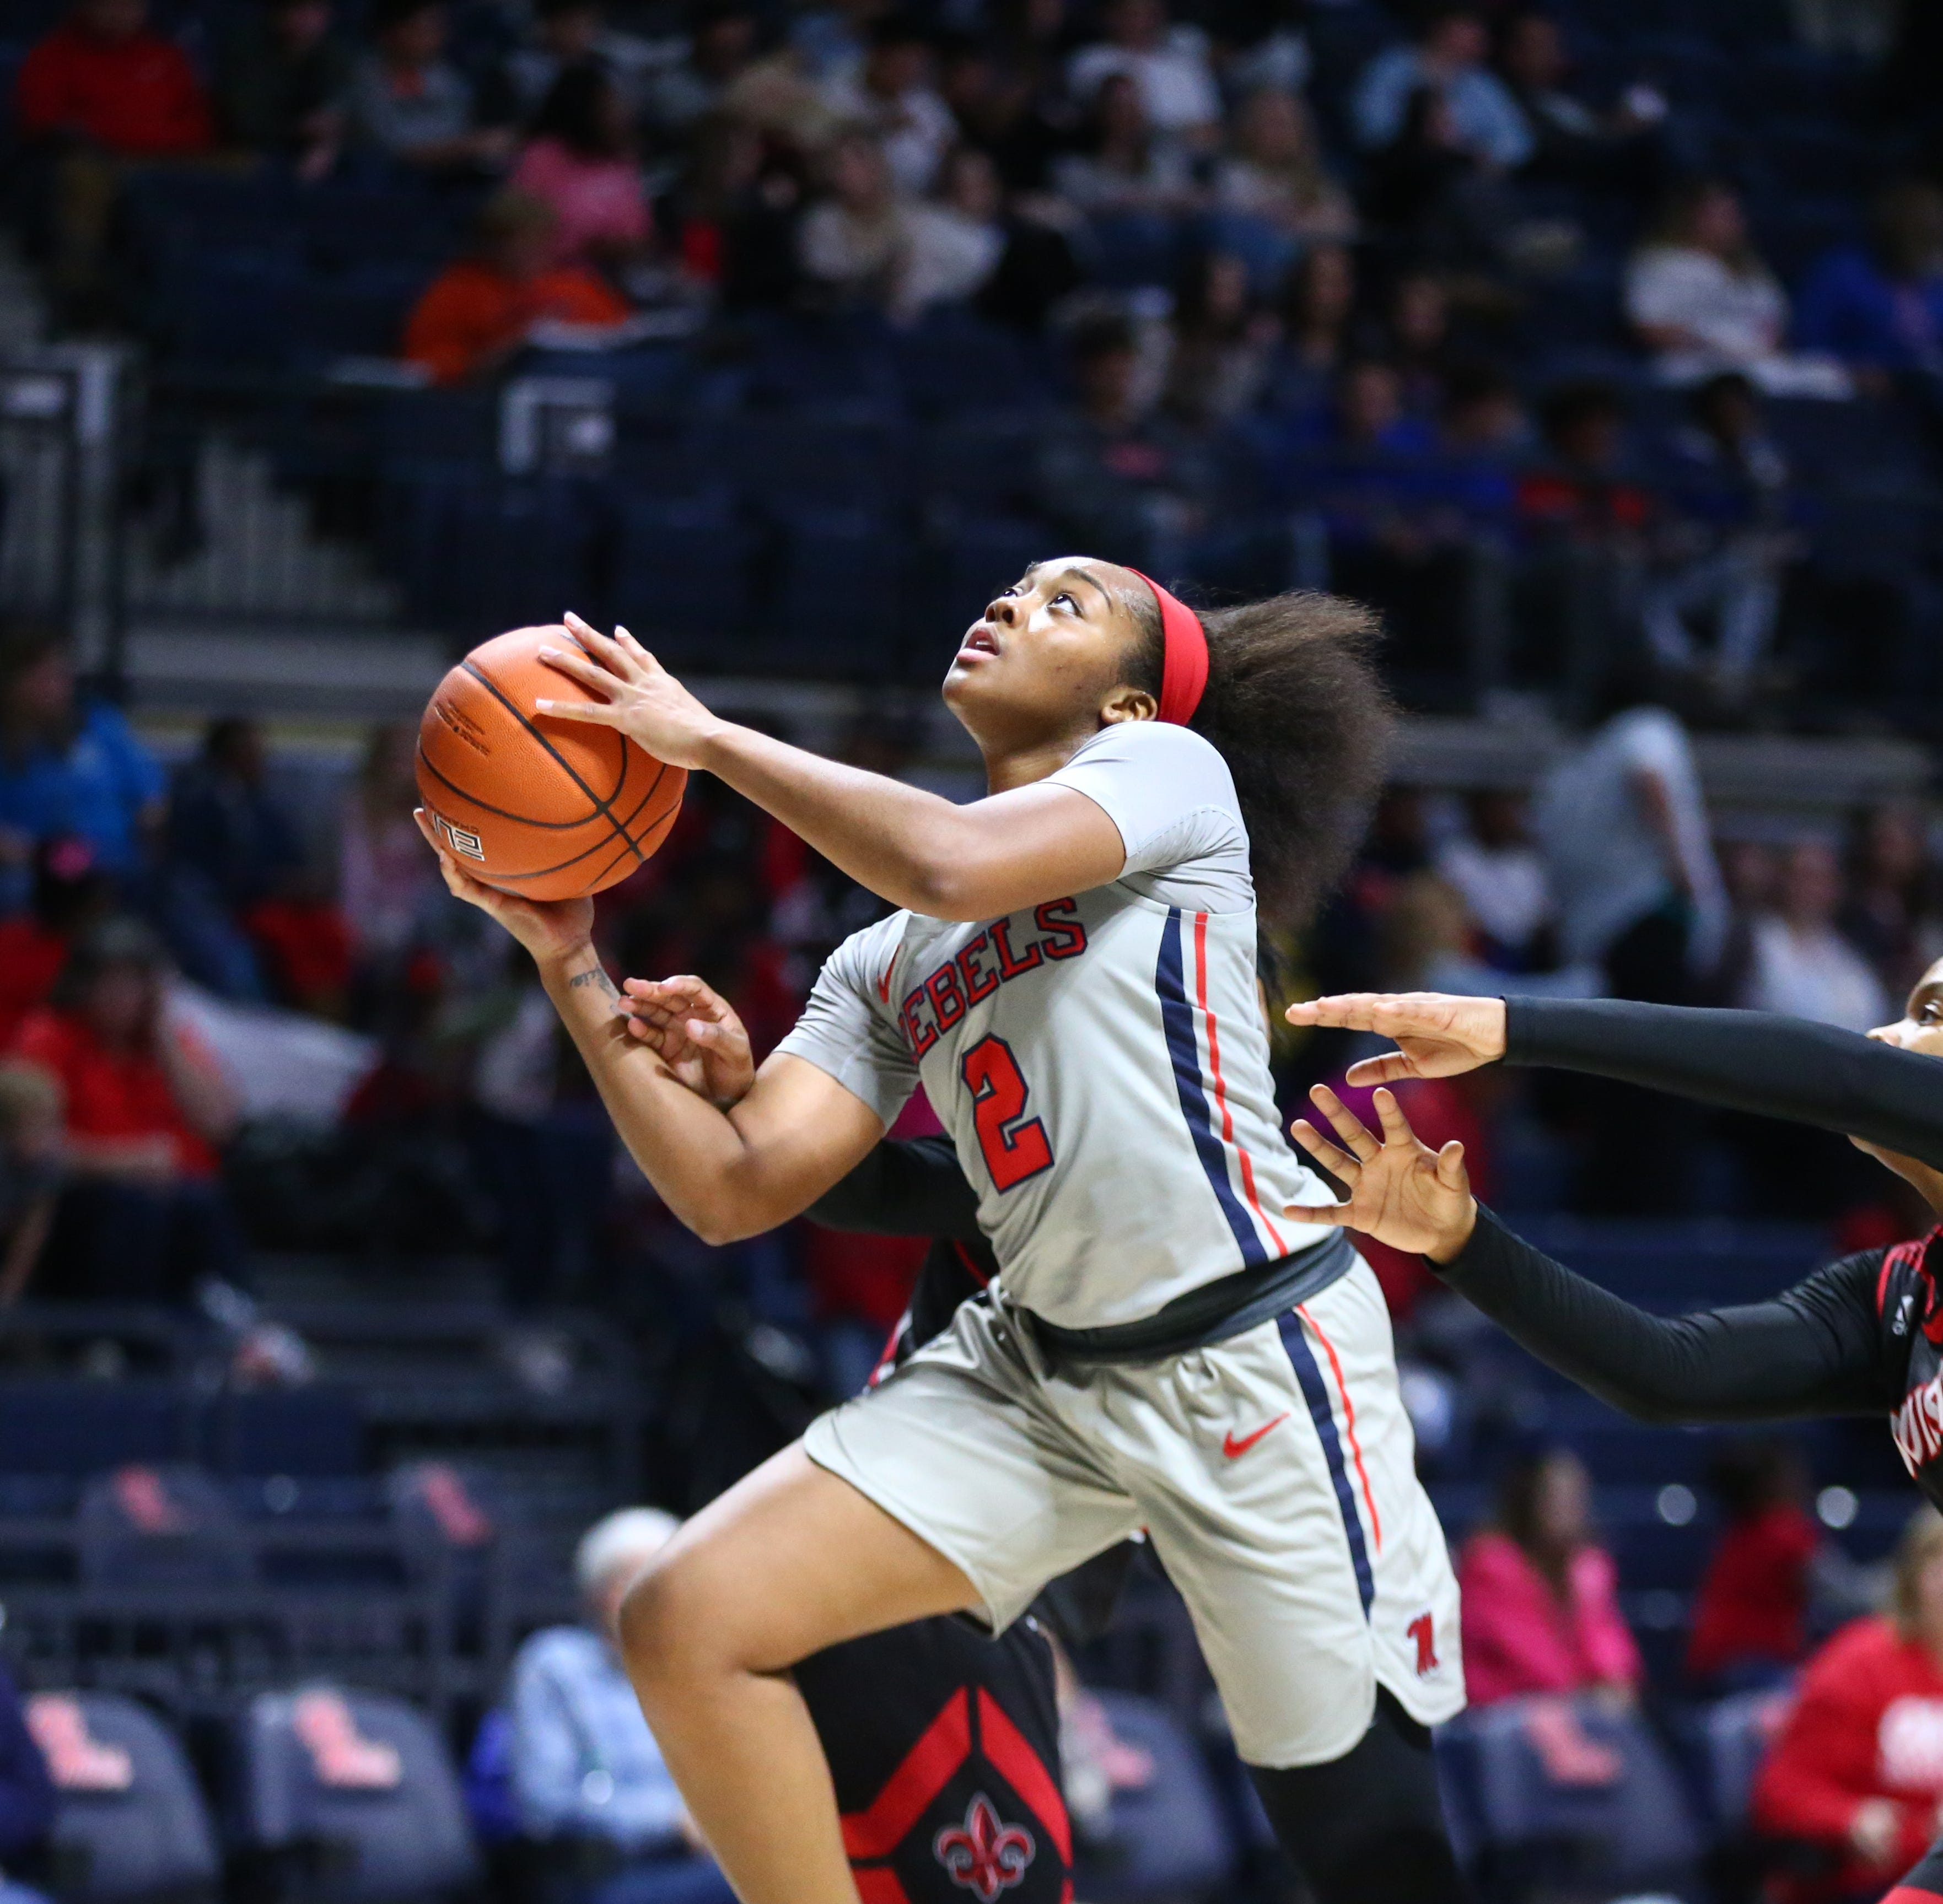 Hot-shooting, passing Ole Miss offense takes winning streak on road versus Louisiana Tech